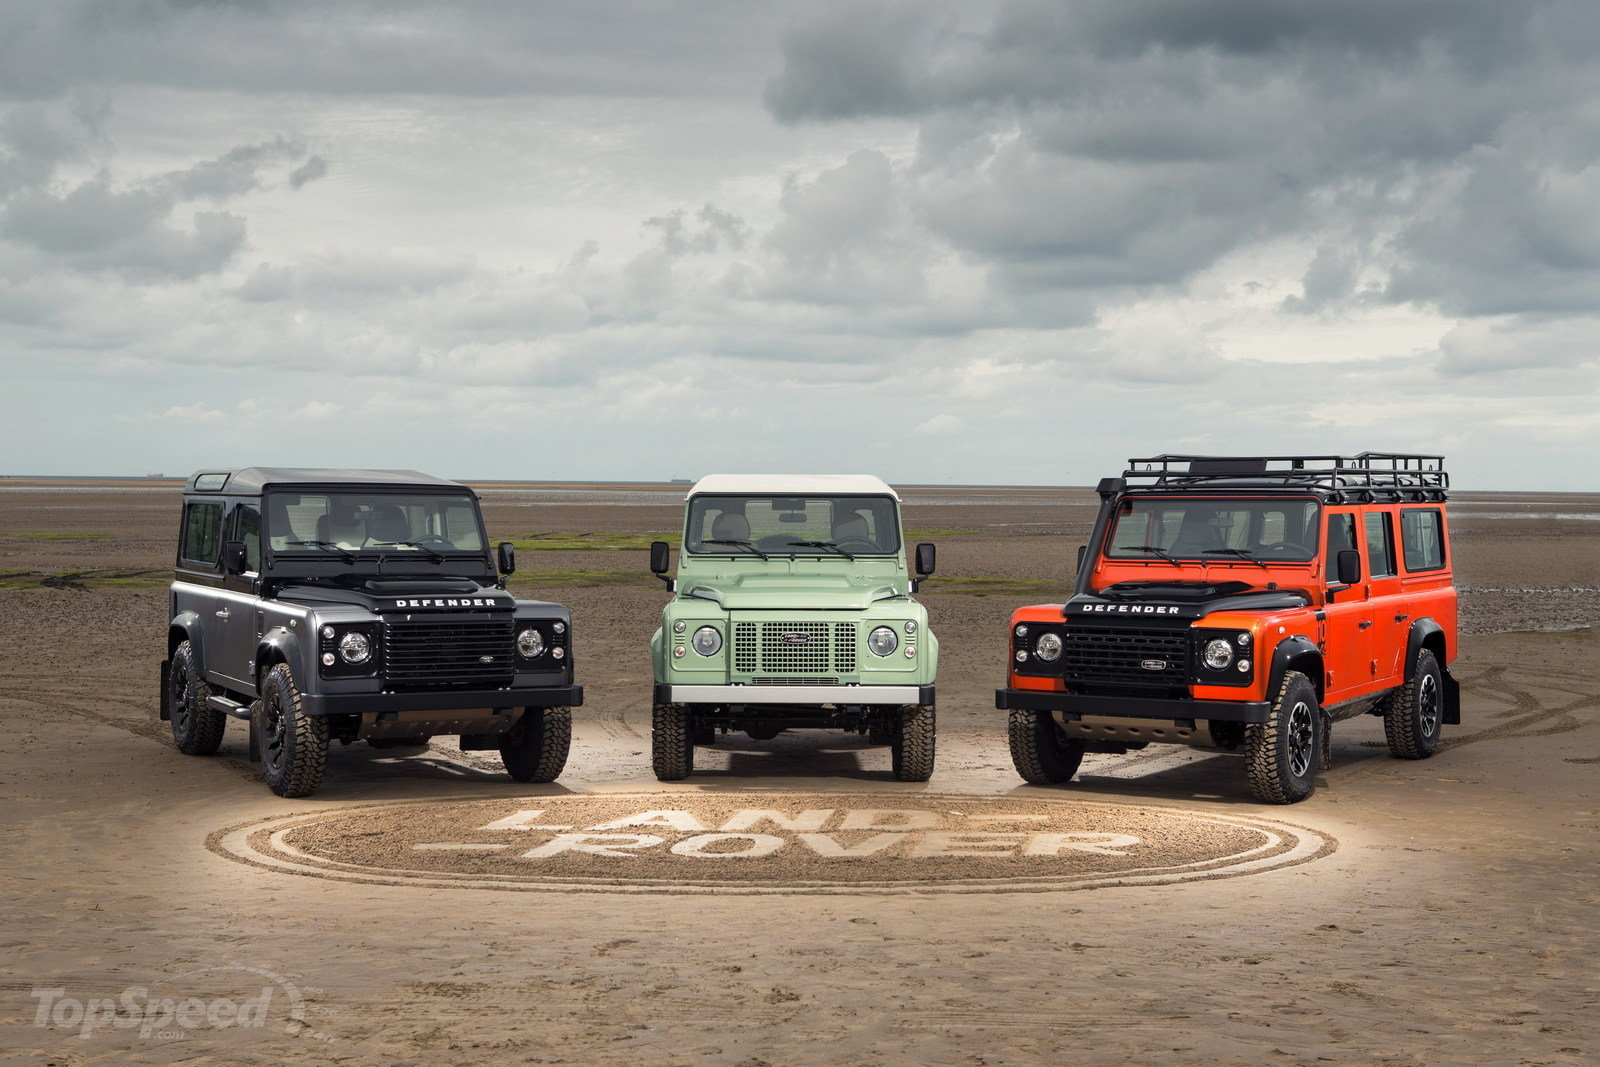 land-rover-defender--6_1600x0w